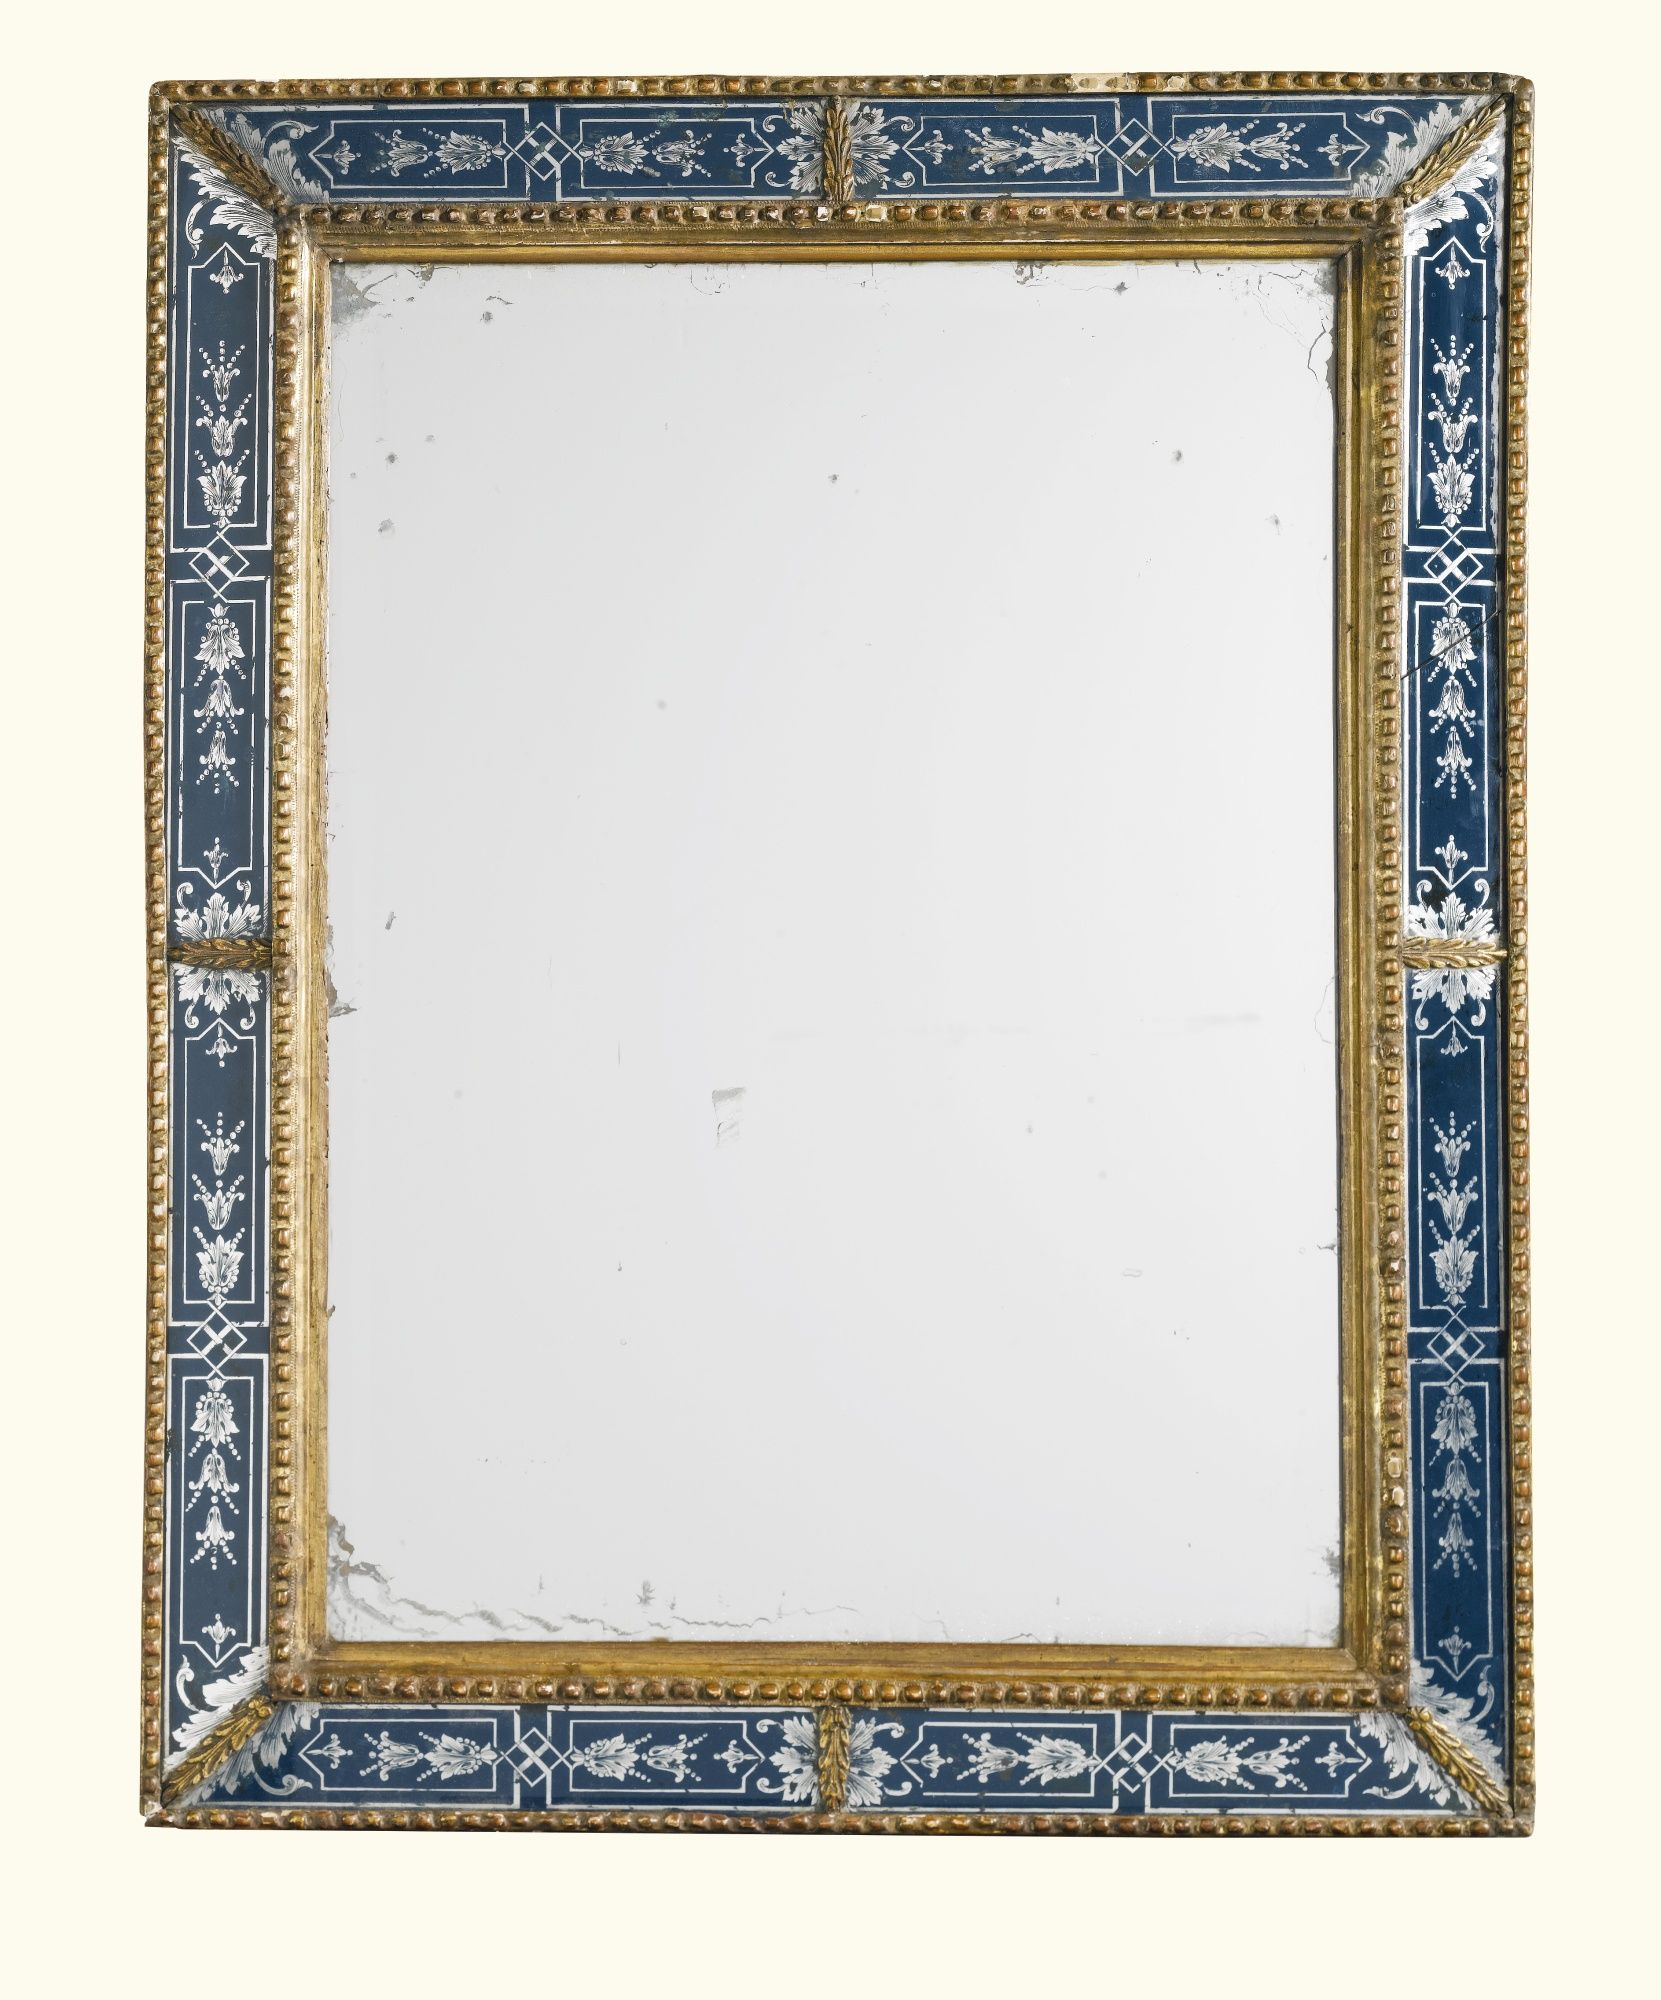 A Queen Anne style carved giltwood verre églomisé mirror, early 20th century, probably by Lenygon & Co